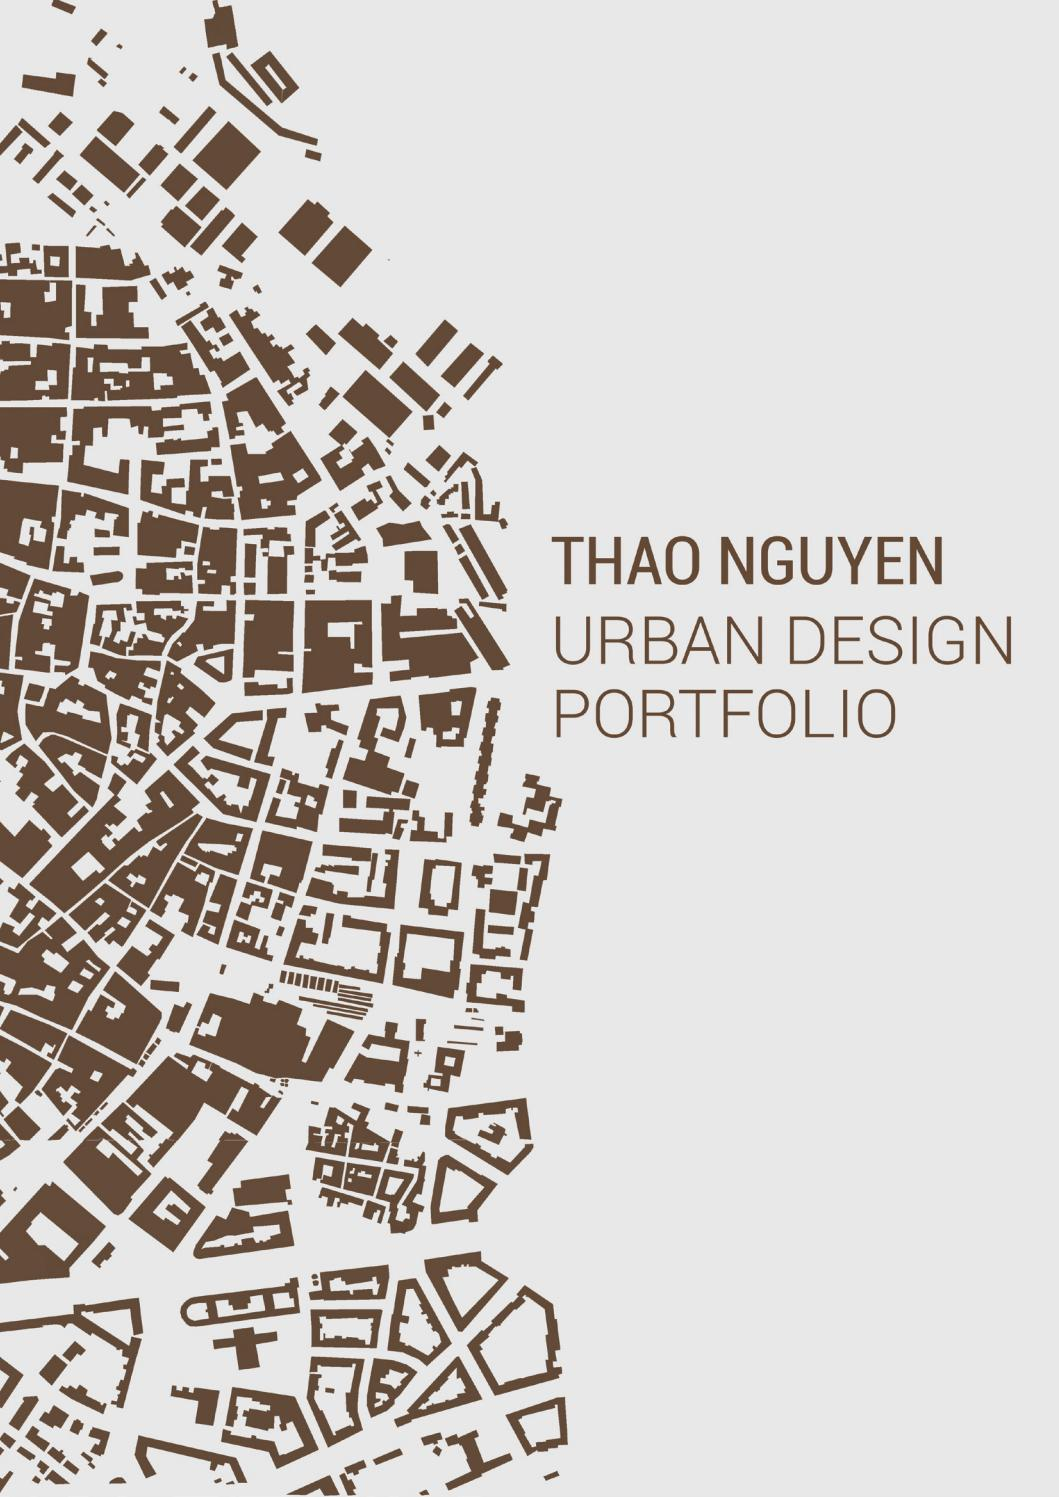 urban design portfolio by vi th u1ea3o nguy u1ec5n th u1ecb